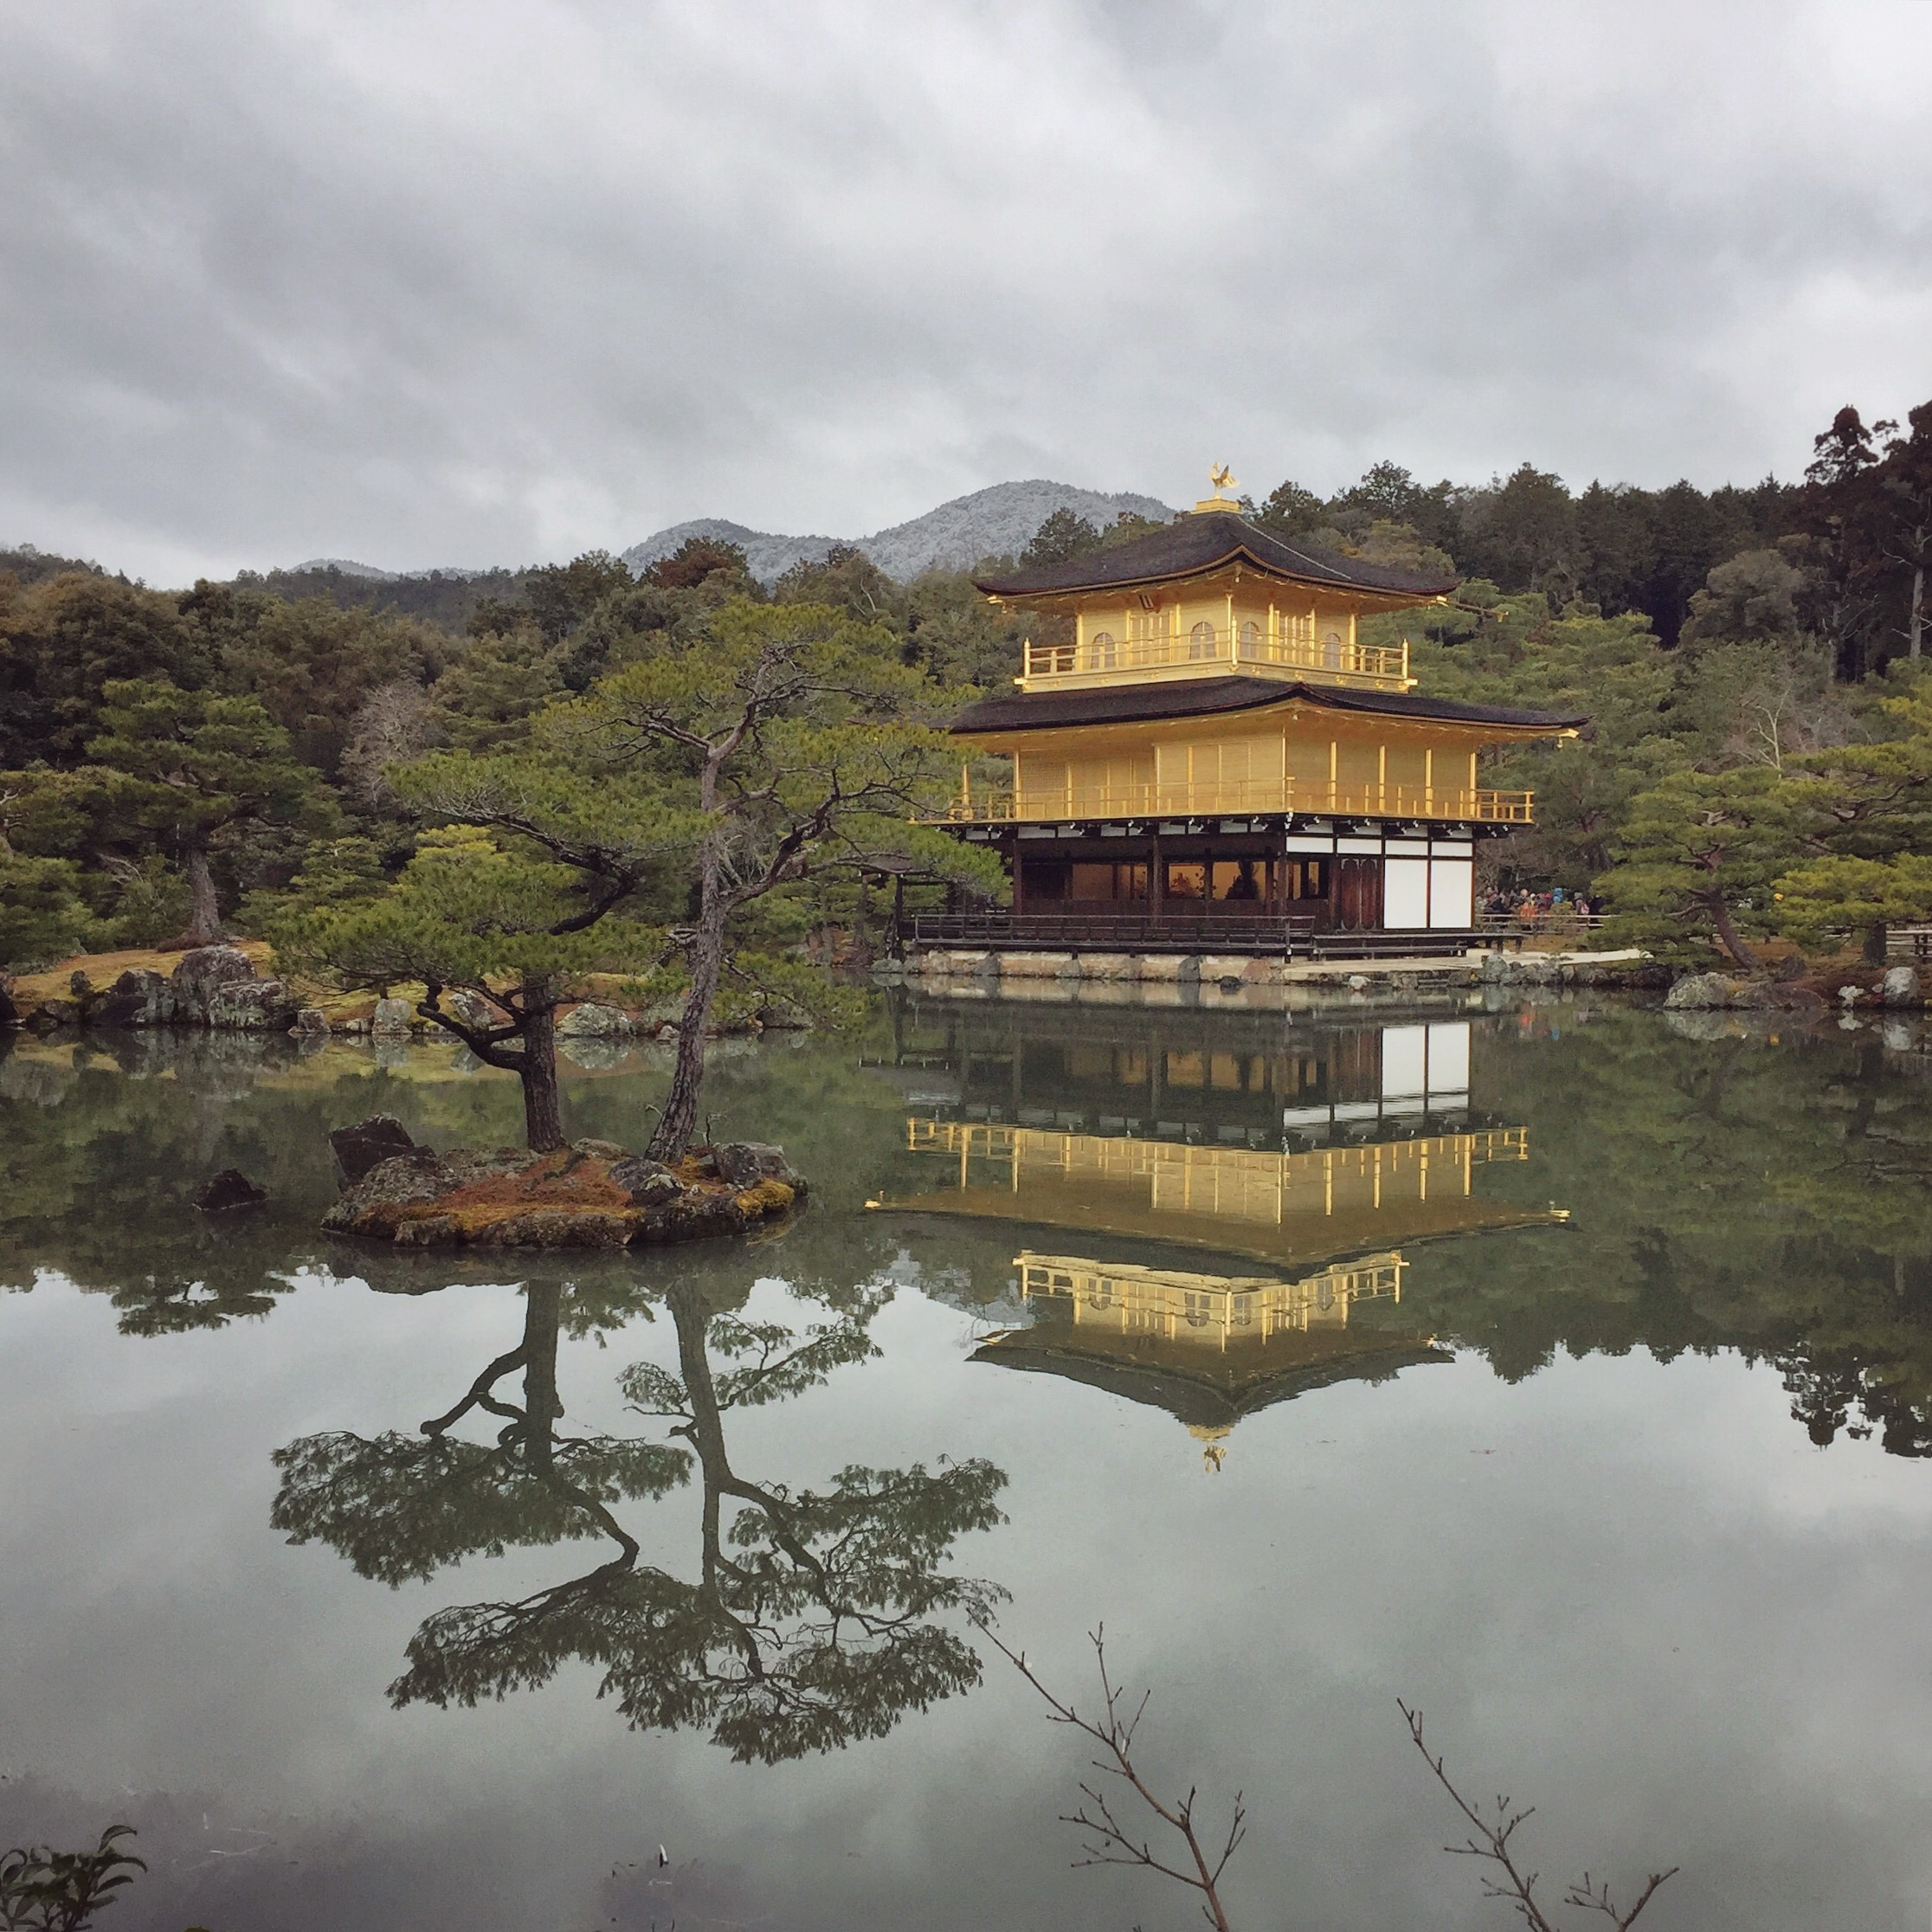 The Golden Palace | EAT.PRAY.MOVE Yoga | Kyoto, Japan